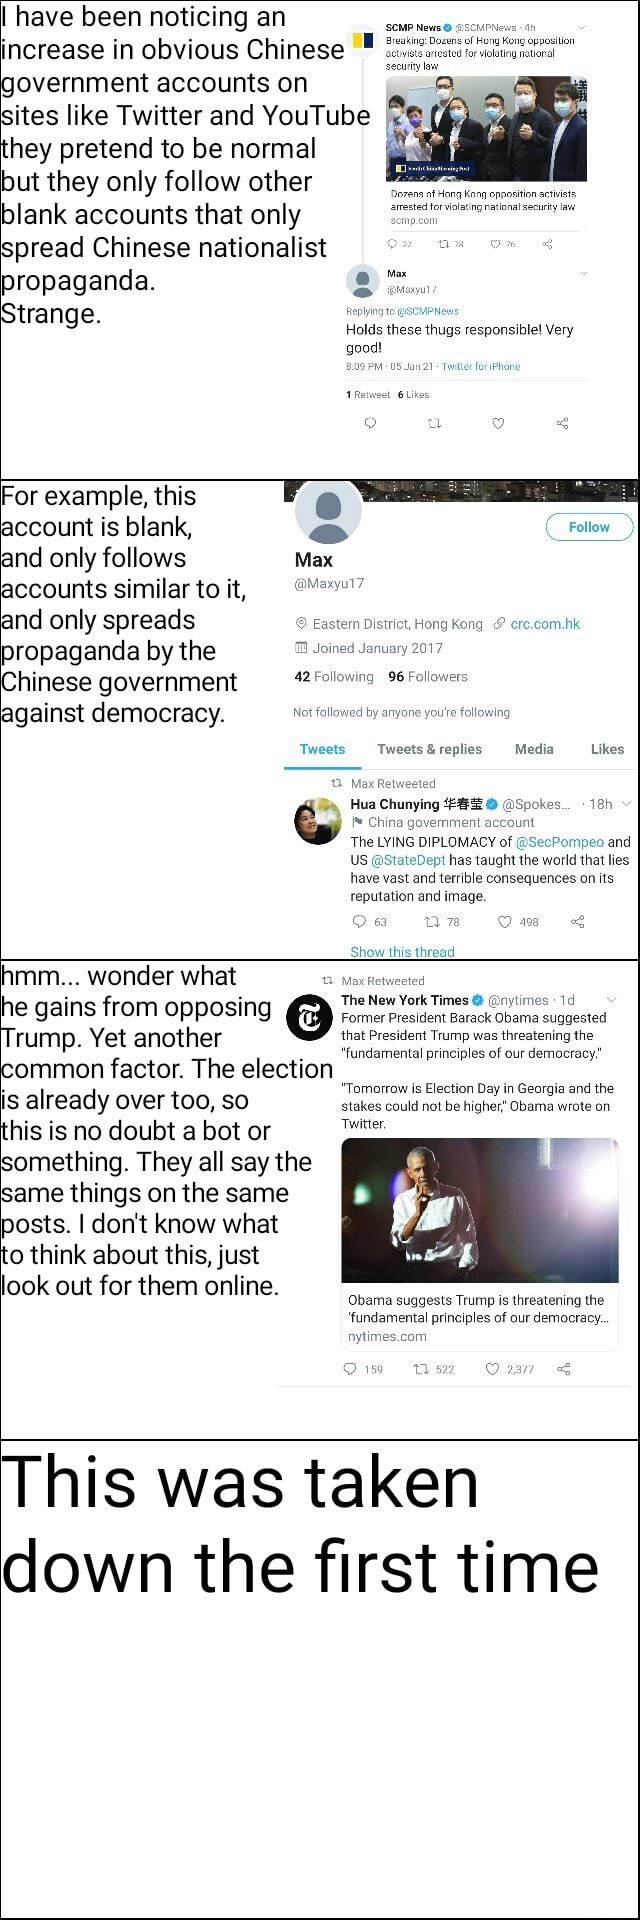 Have been noticing an increase in obvious Chinese government accounts on sites like Twitter and YouTube hey pretend to be normal but they only follow other News Hen Kong opposition voating natanal Dozens nf Hong Kng opposition stivists blank accounts that only spread Chinese nationalist on propaganda. Strange. olds these thugs responsible Very good PM Jan'21 for Phone 9 For example, this account is blank, Follow and only follows Max accounts similar to it, and only spreads Easter District, Hong Kong ere.com.hk propaganda by the Joined January 2017 Chinese government against democracy. Not followed by anyone you're following Tweets Media Likes China government The LYING DIPLOMACY of SecPompeo and US StateDept has taught the world that lies have vast and terrible consequences on its reputa